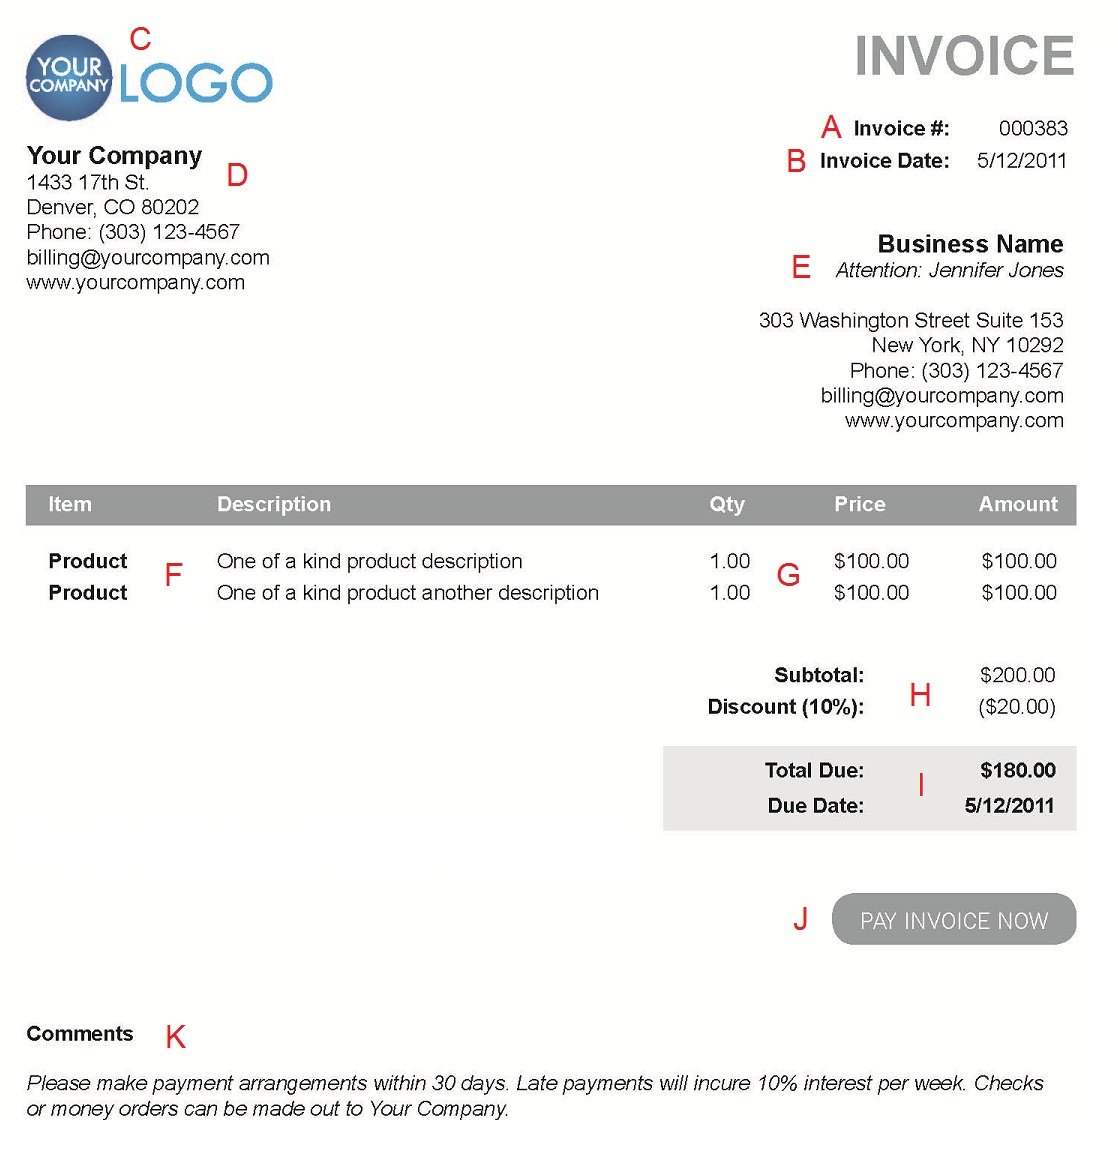 Reliefworkersus  Sweet The  Different Sections Of An Electronic Payment Invoice With Hot A  With Charming Ups International Commercial Invoice Form Also Invoice Price Means In Addition Printable Billing Invoice And Carbon Invoice Pads As Well As Invoice For Services Template Free Additionally Invoice Sample Uk From Paysimplecom With Reliefworkersus  Hot The  Different Sections Of An Electronic Payment Invoice With Charming A  And Sweet Ups International Commercial Invoice Form Also Invoice Price Means In Addition Printable Billing Invoice From Paysimplecom